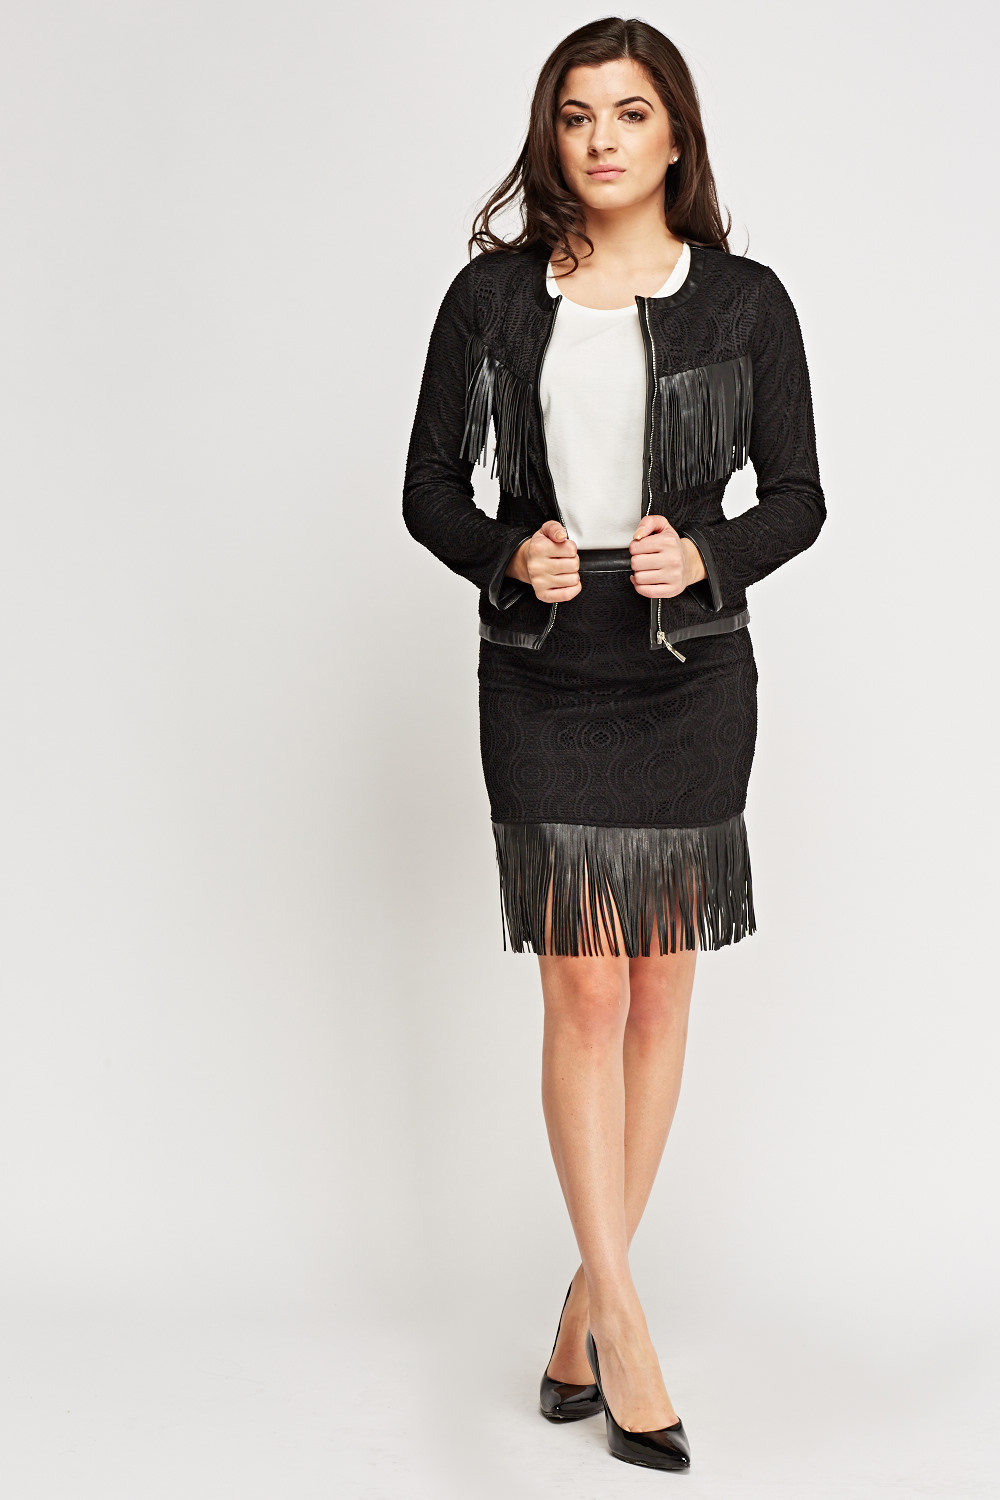 a3be690134f2 Mesh Overlay Fringed Skirt - Just £5